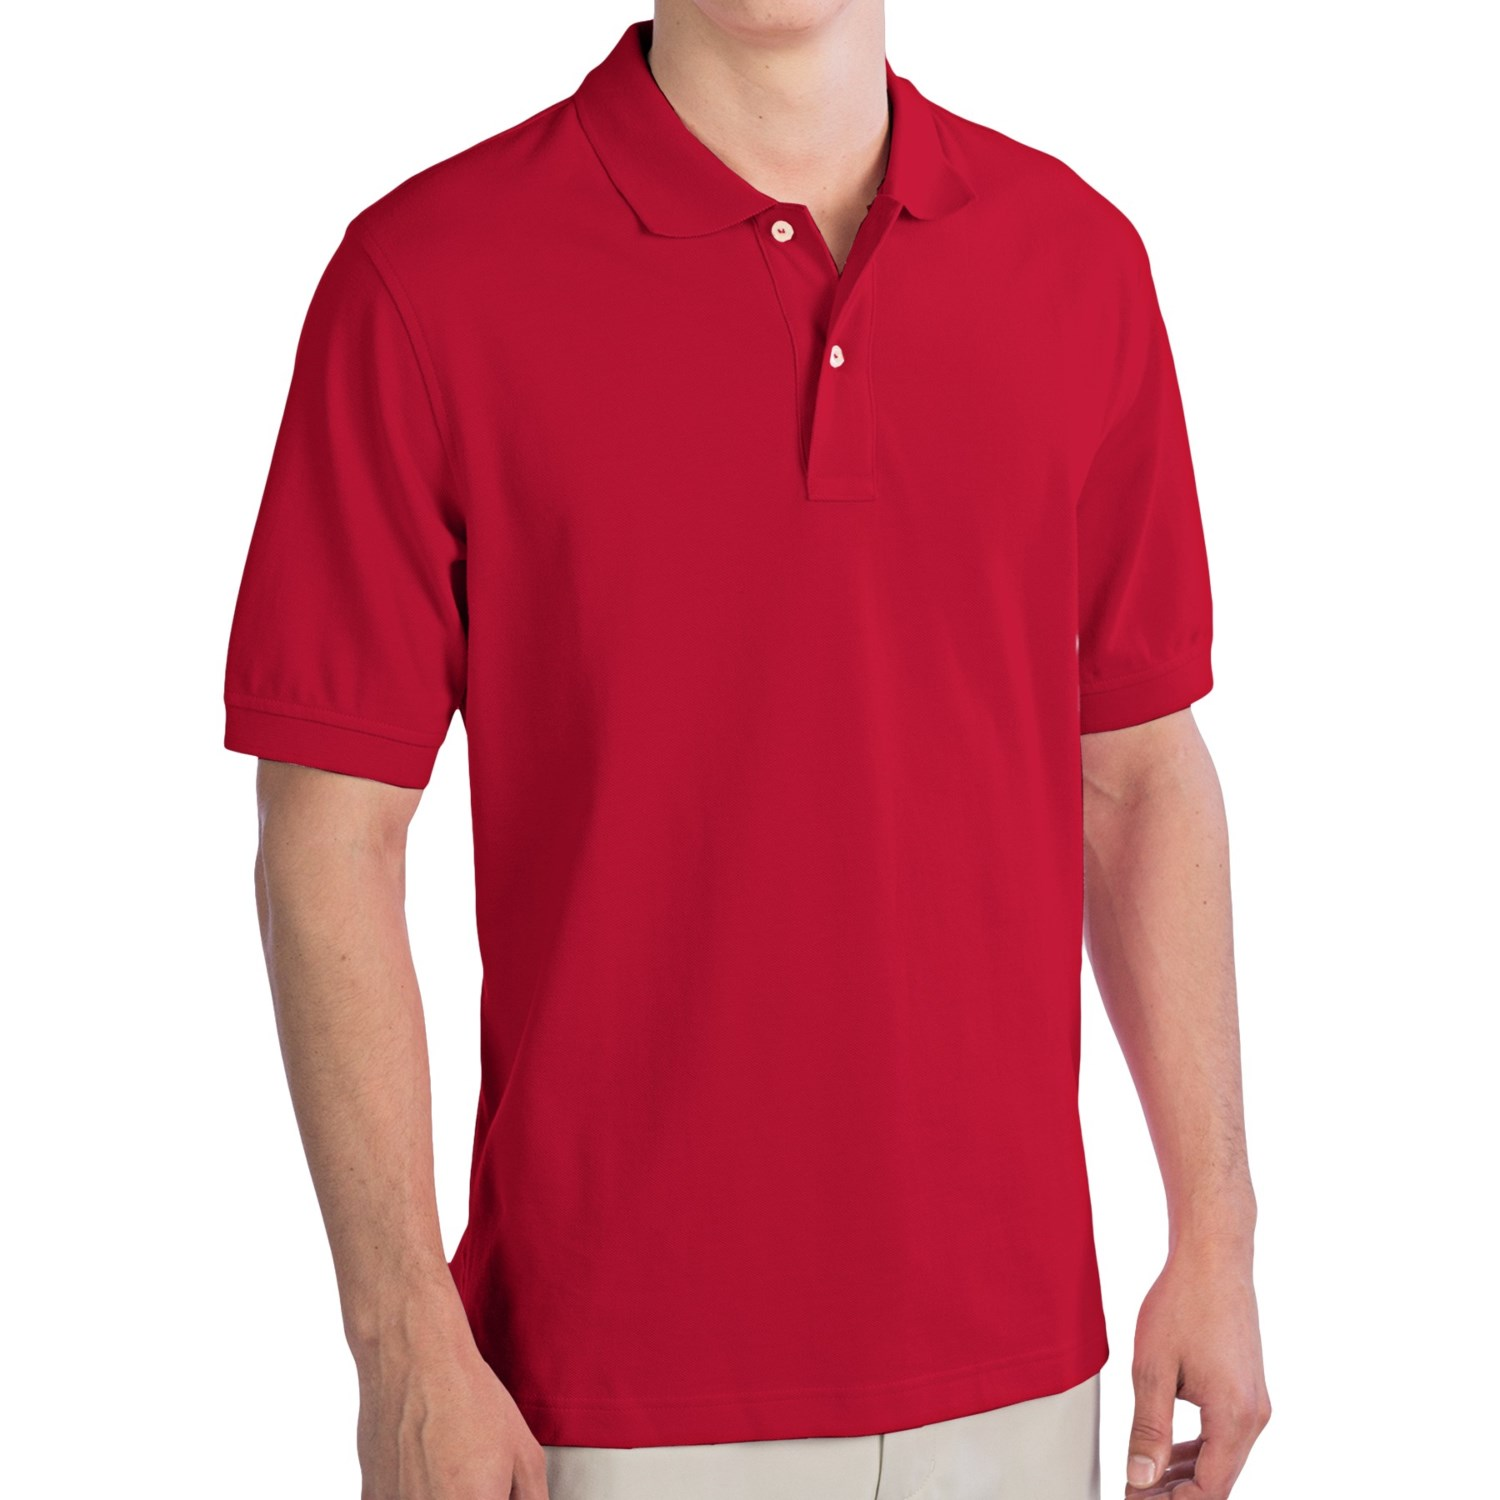 Lands End Polo Shirts At Sears